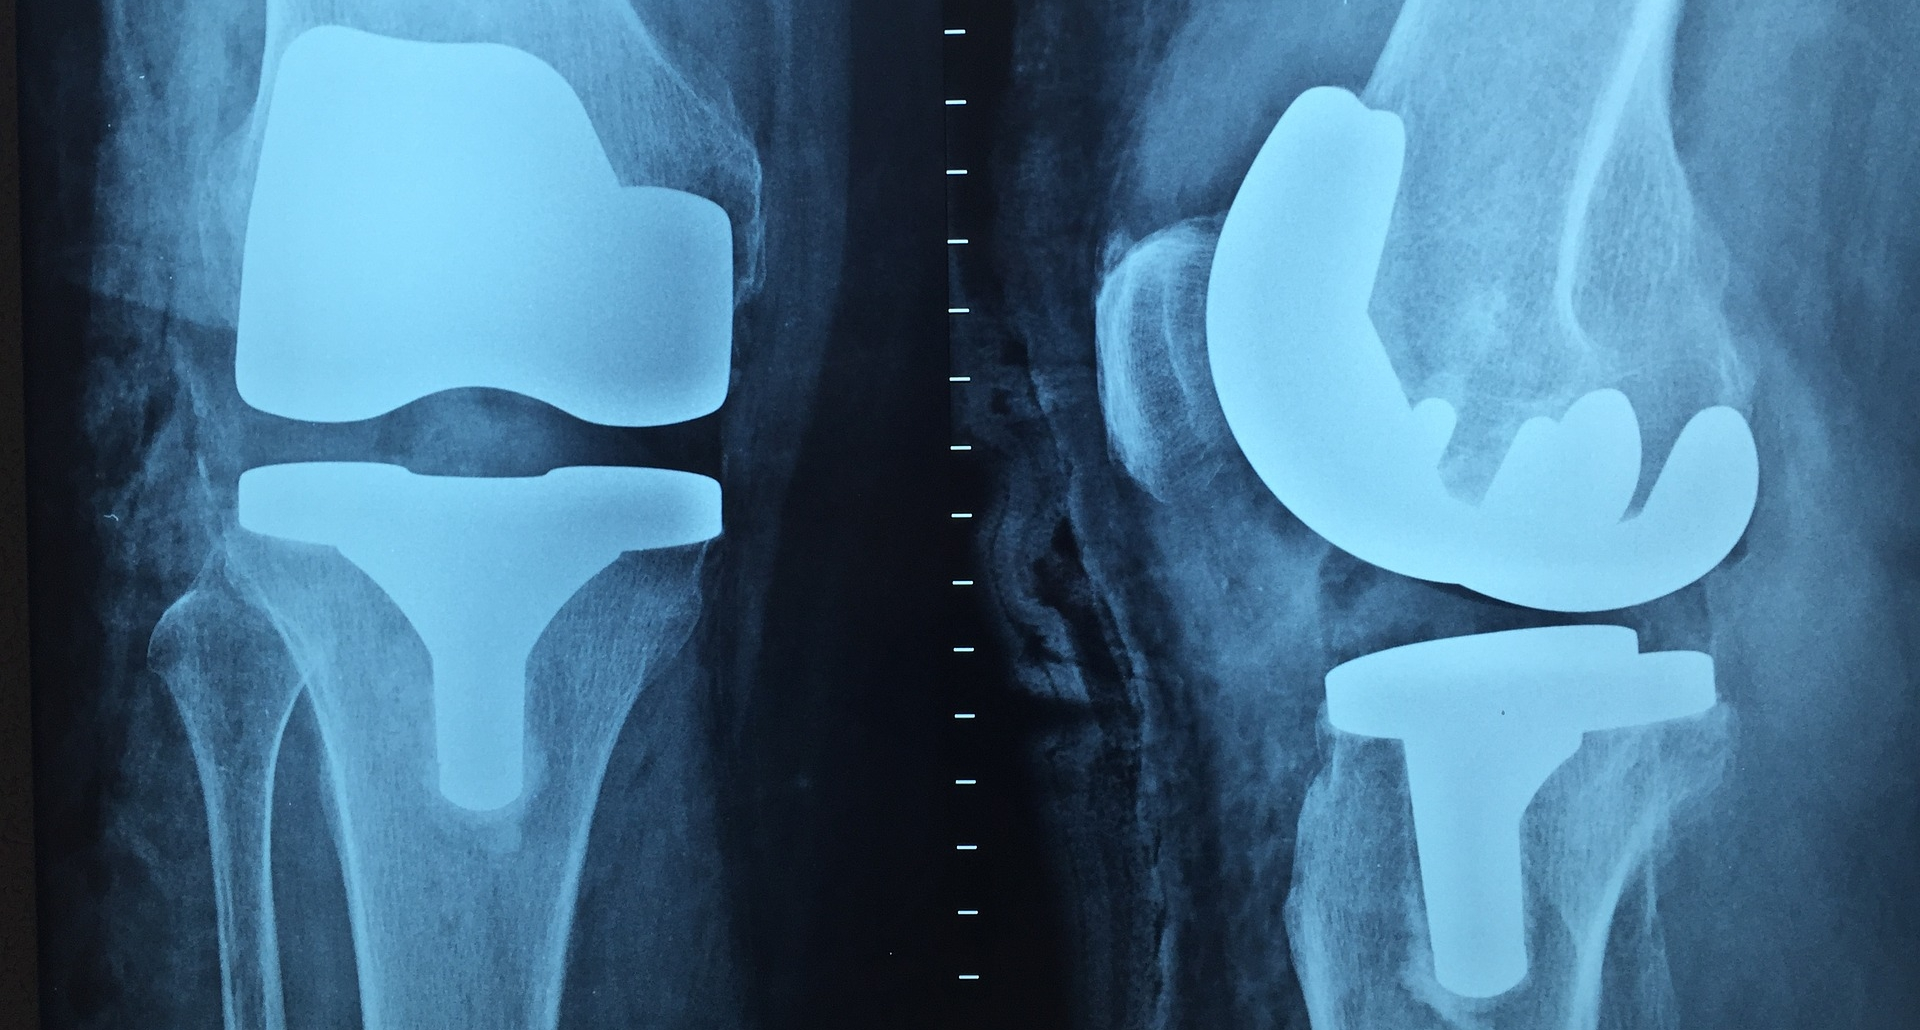 Photograph: X-ray images of two knees with steel knee replacement hardware shown on both sides.